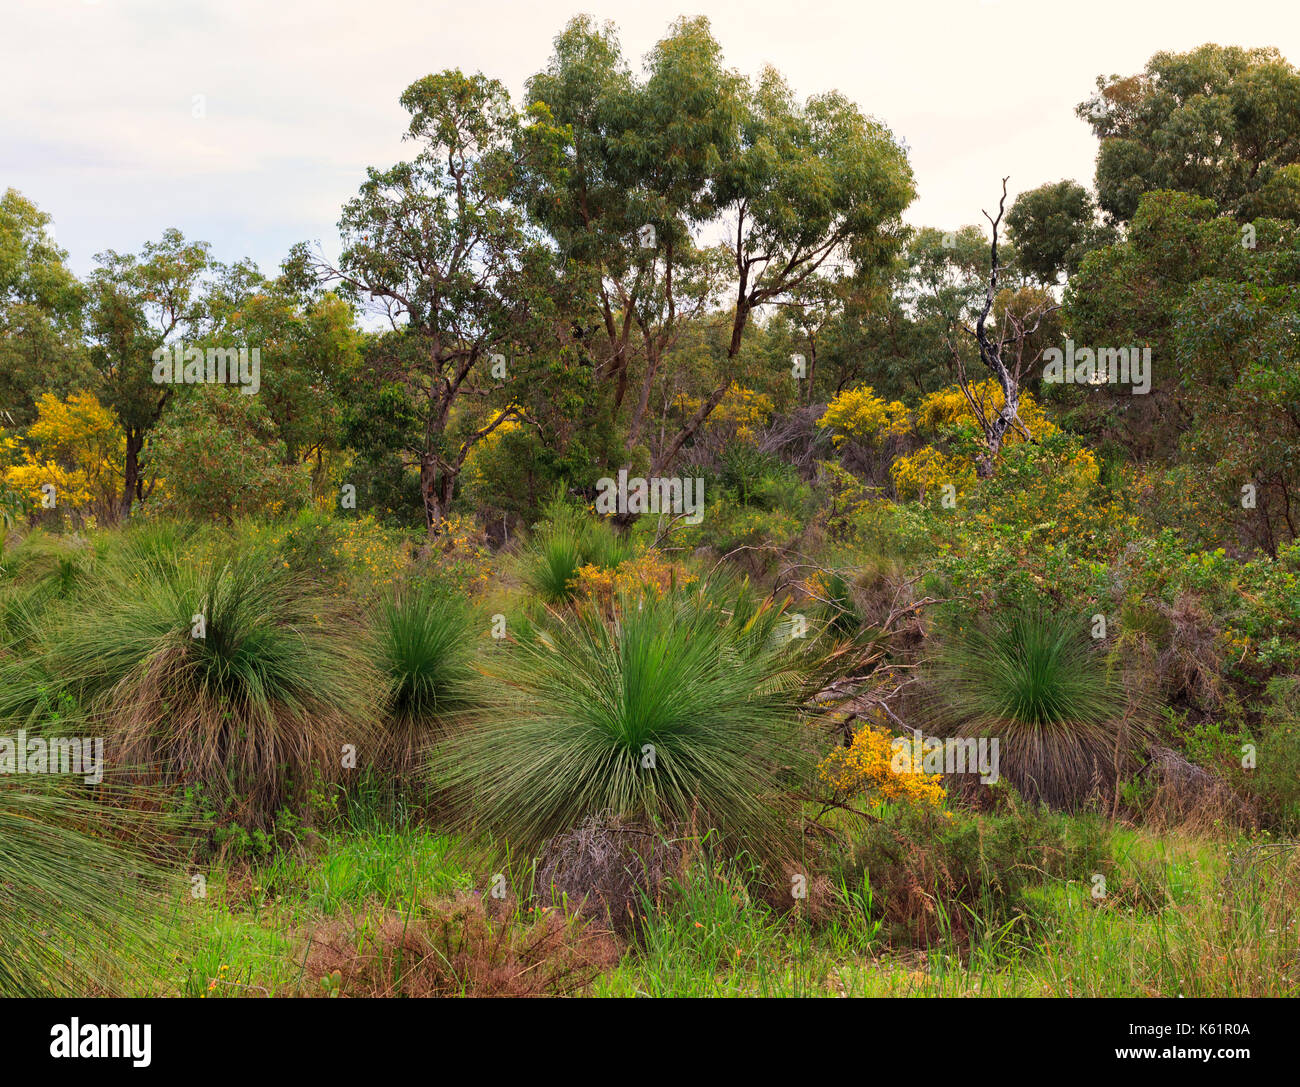 Grass trees and wattle Star Swamp Reserve suburban bushland - Stock Image